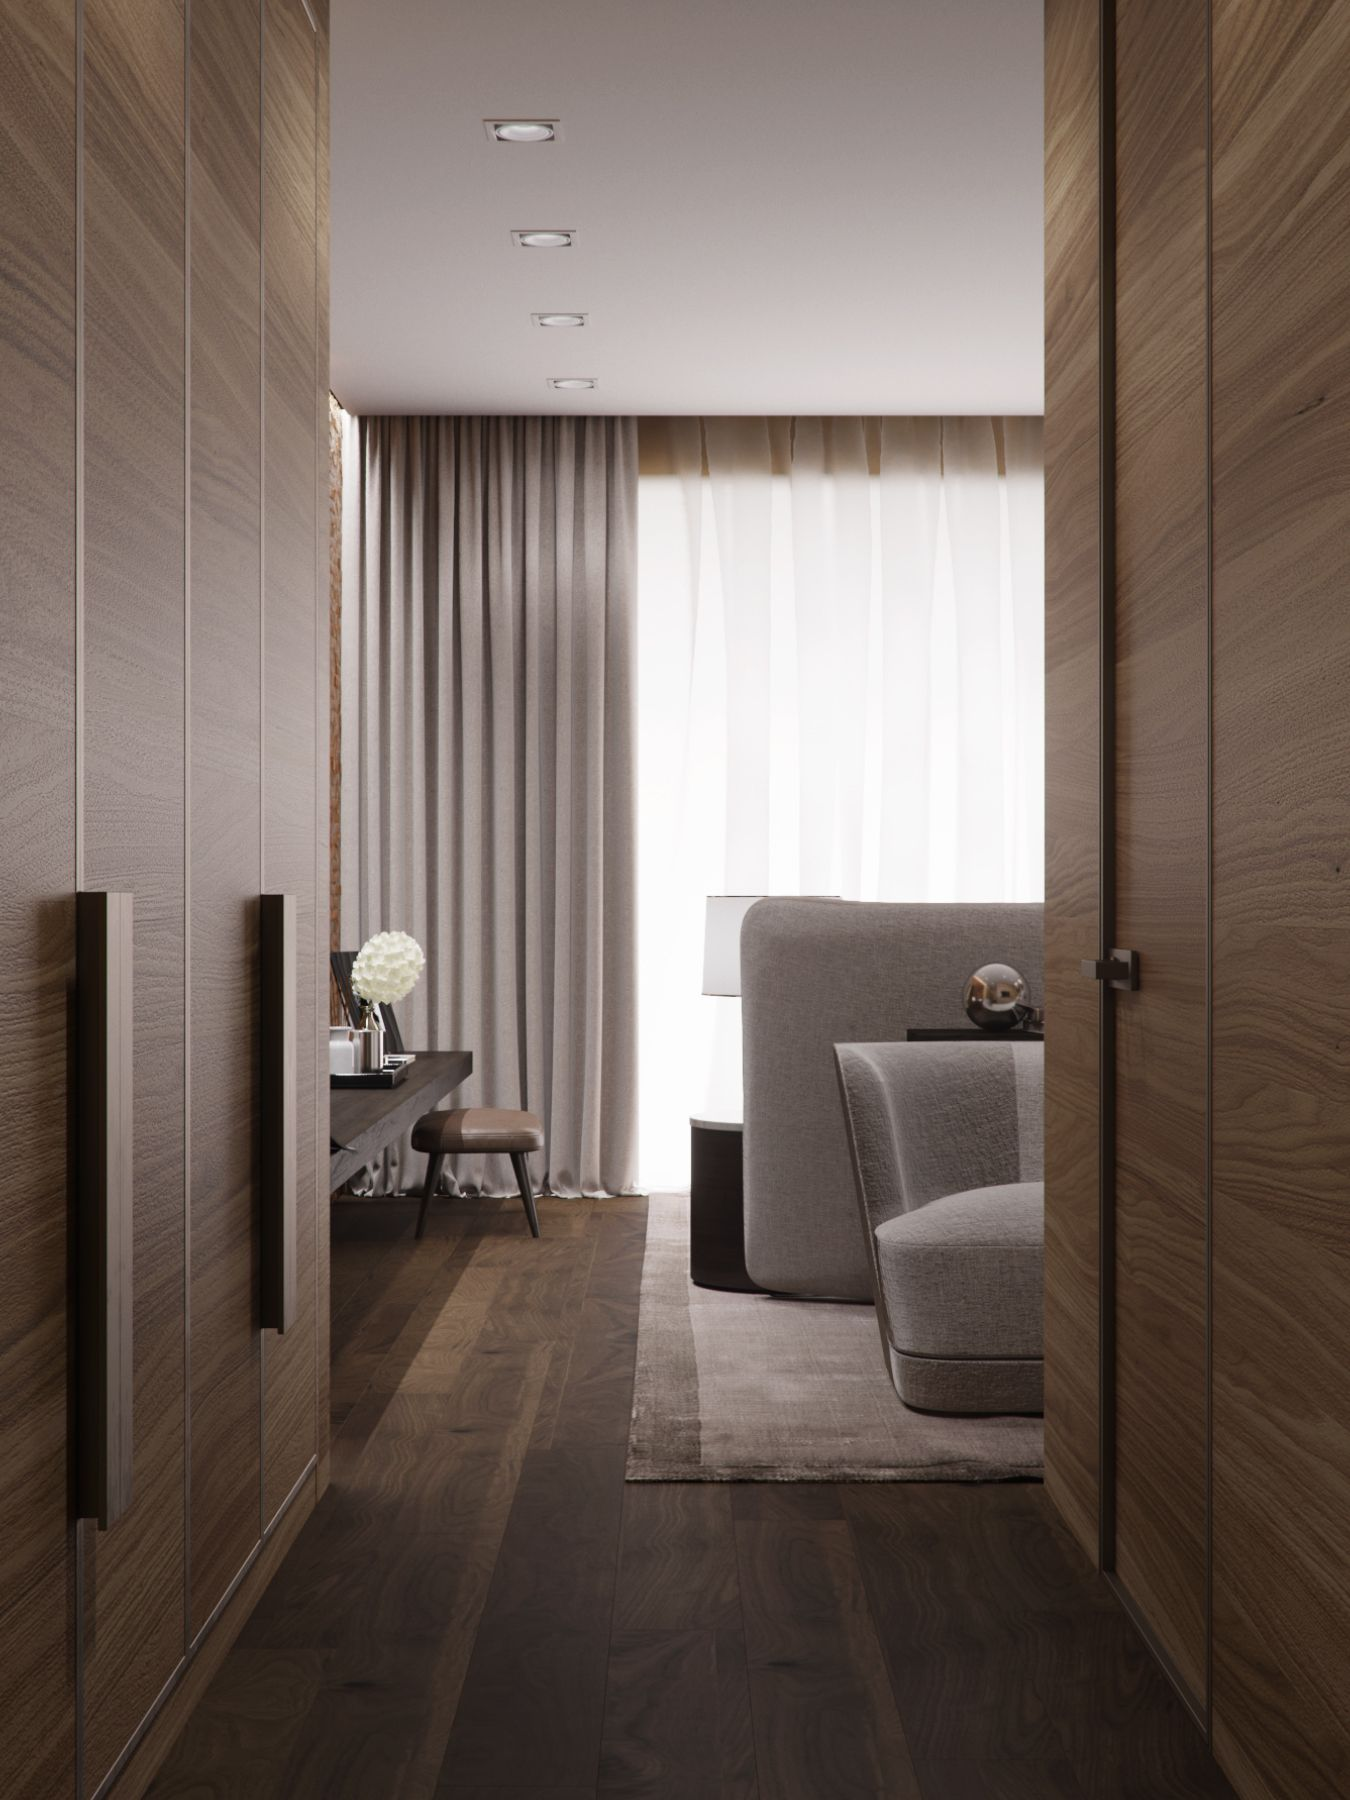 3D Rendering Of Hotel Rooms